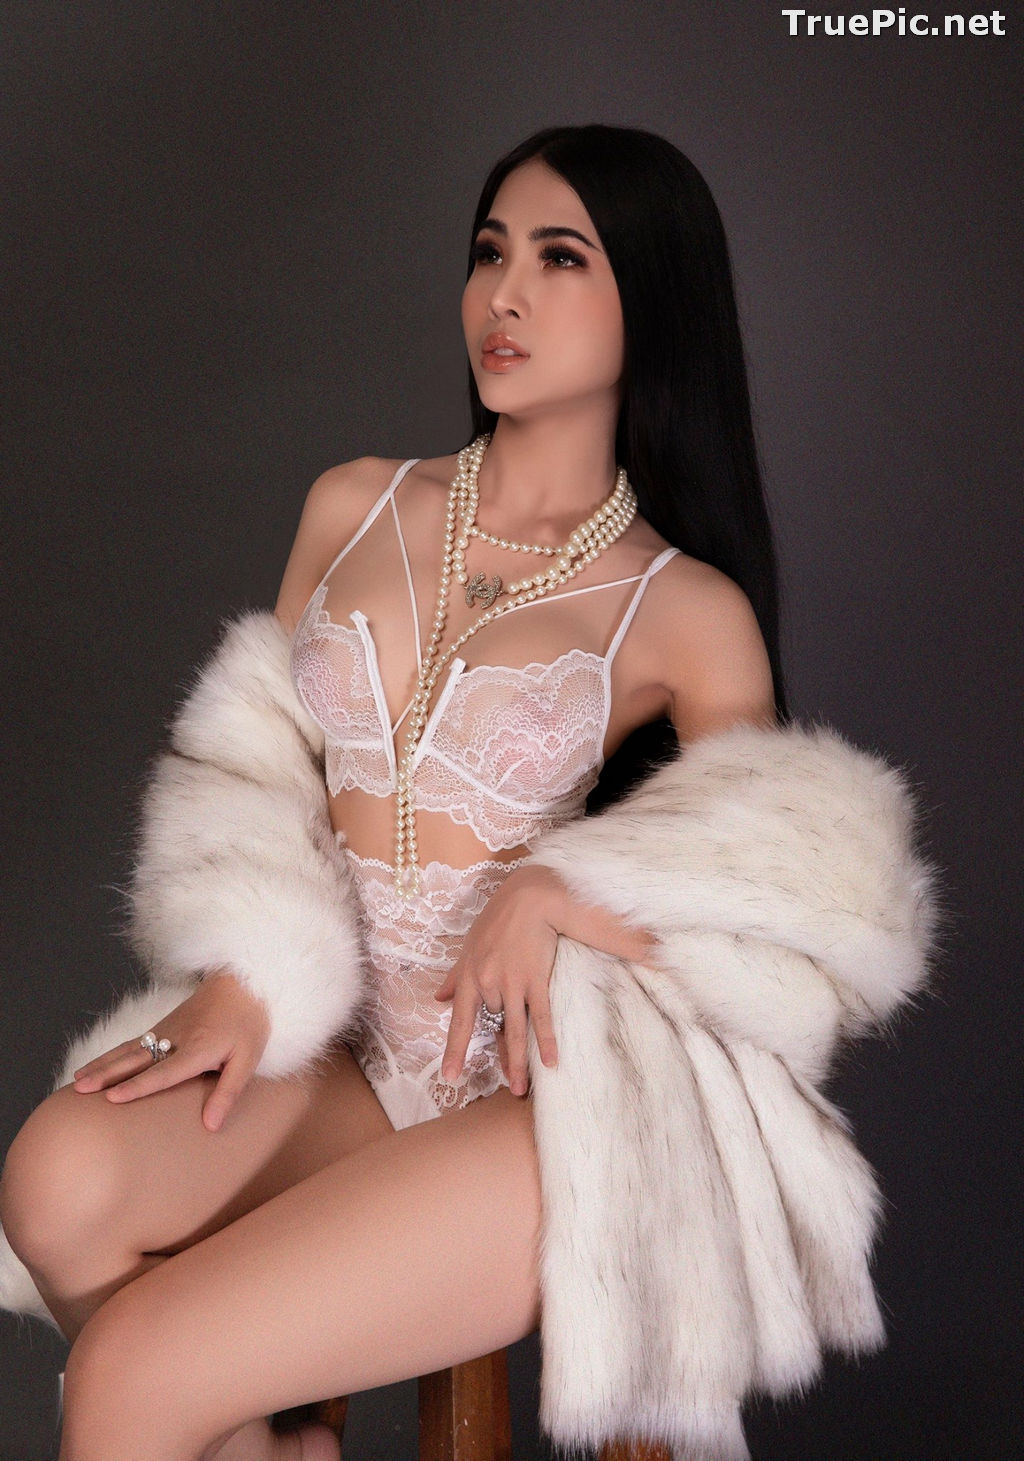 Image Vietnamese Model - Hot Beautiful Girls In White Collection - TruePic.net - Picture-2